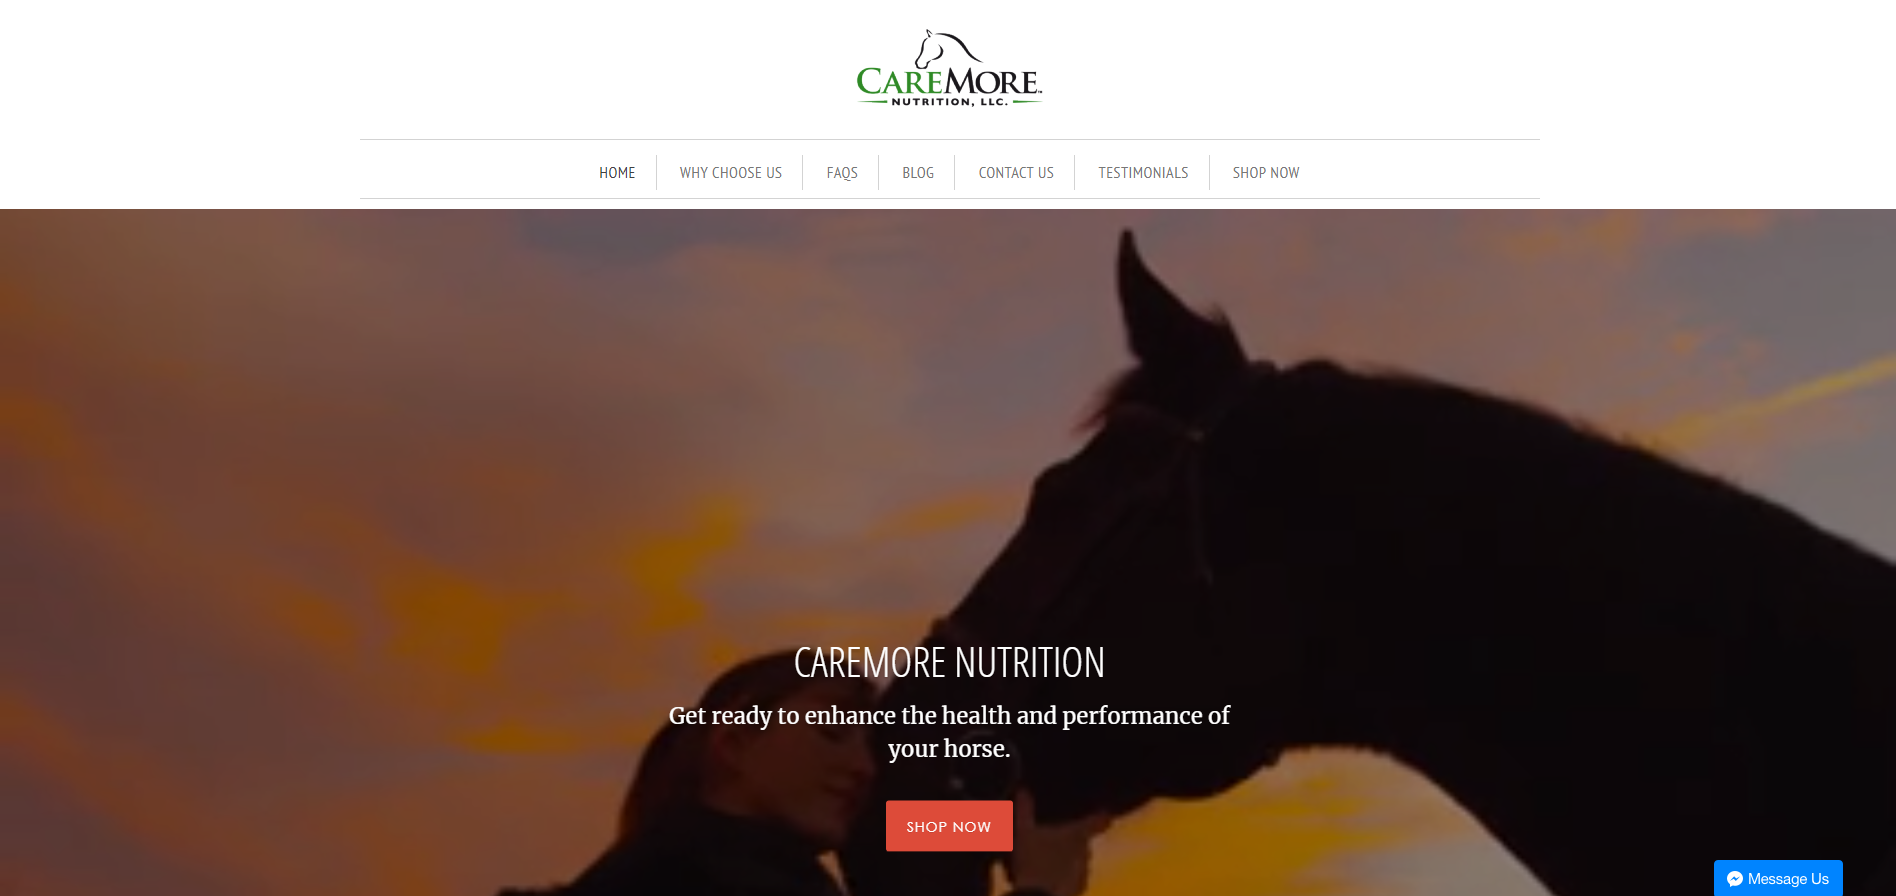 CAREMORE NUTRITION Home Page